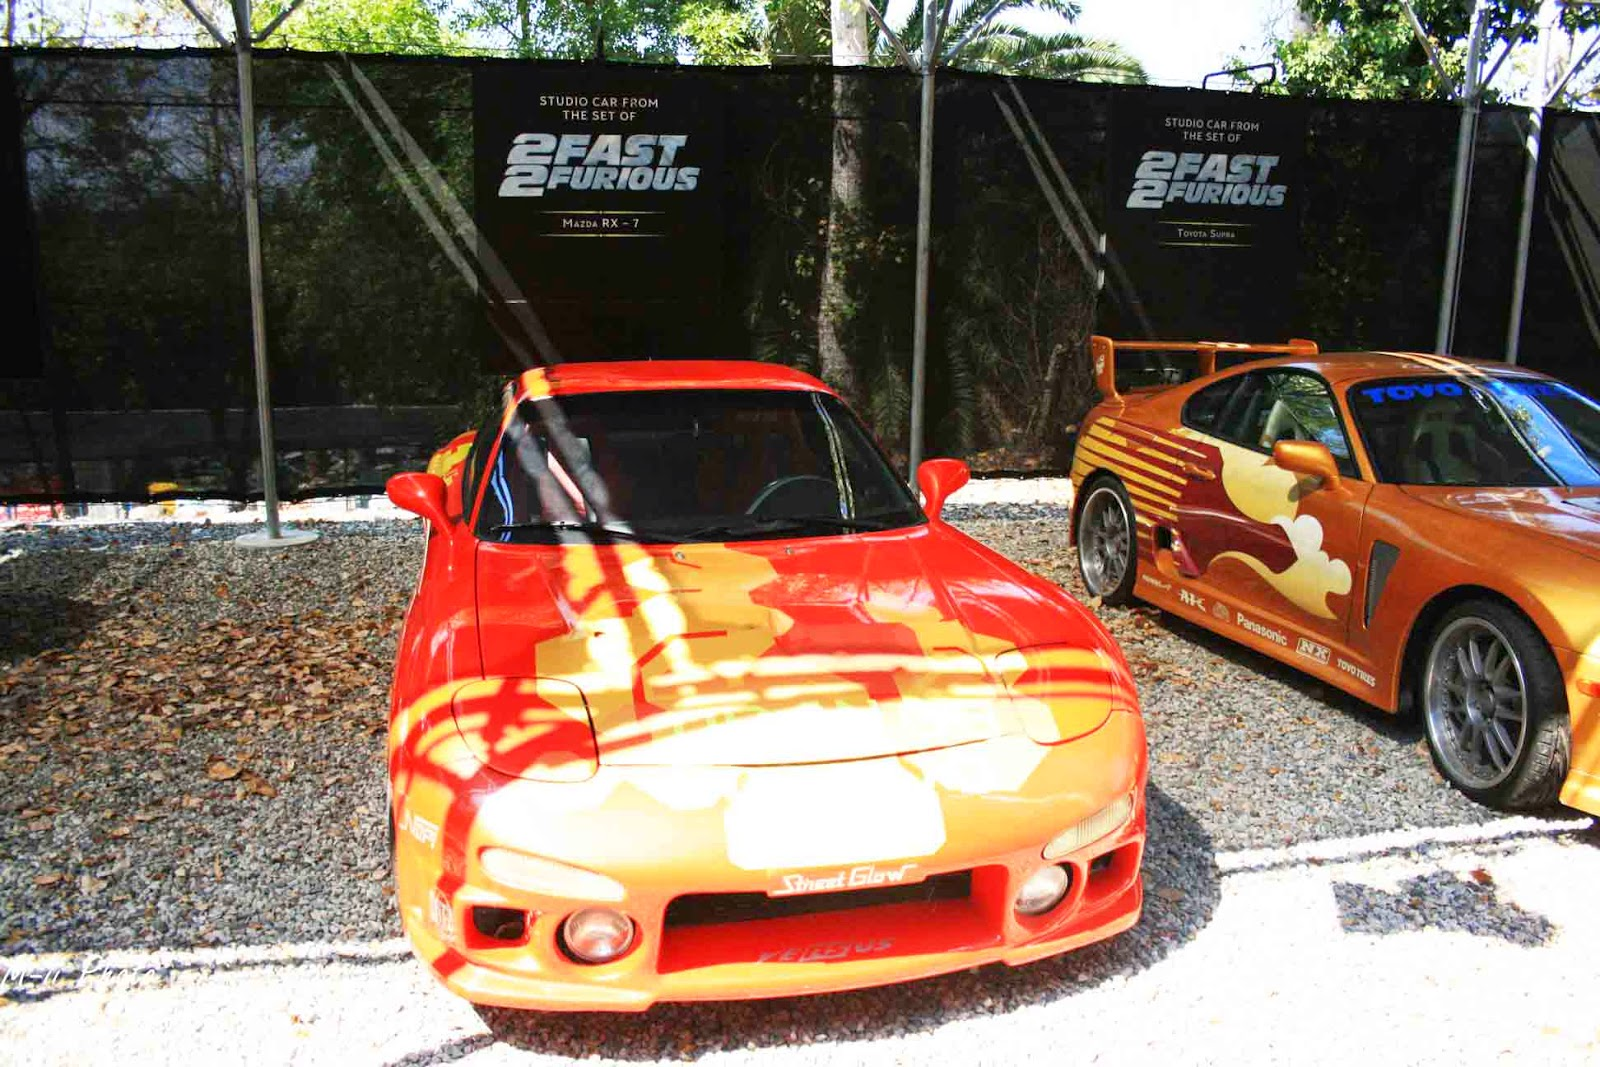 Les voitures de Fast & Furious Universal Studios Hollywood